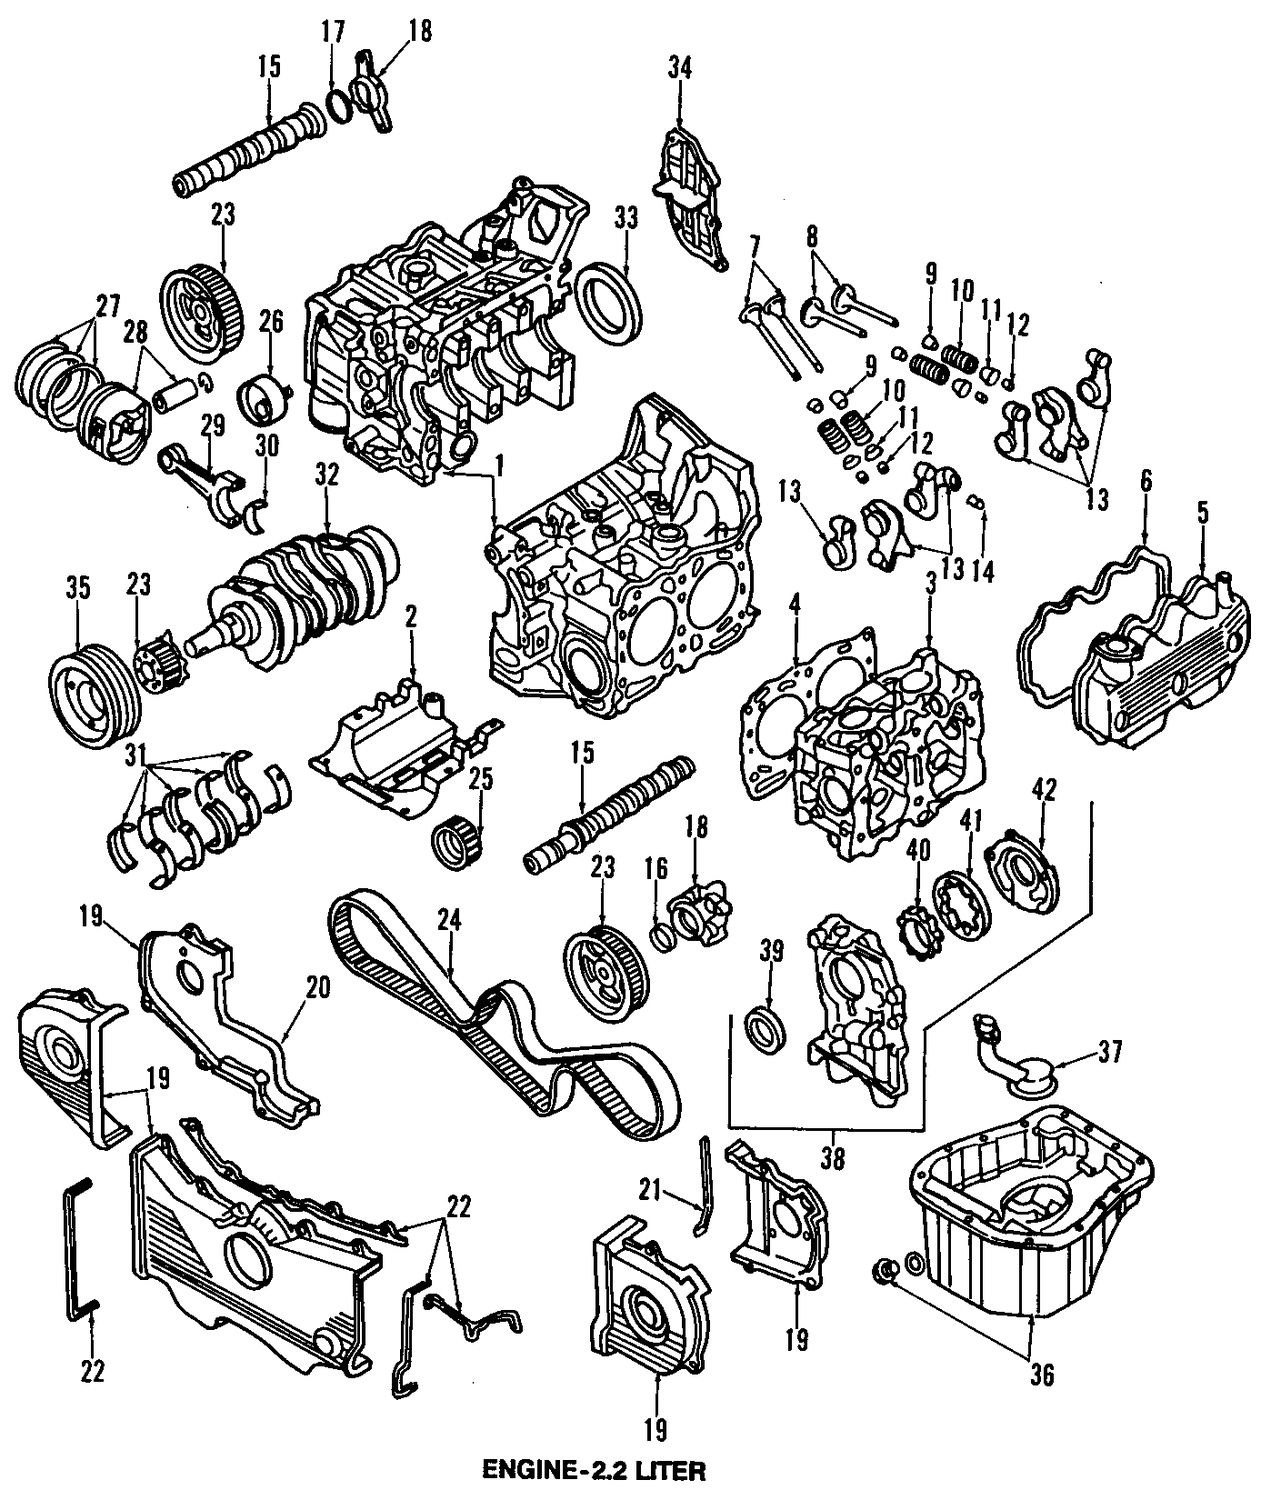 Subaru Ej20 Engine Diagram Periodic Amp Diagrams Science